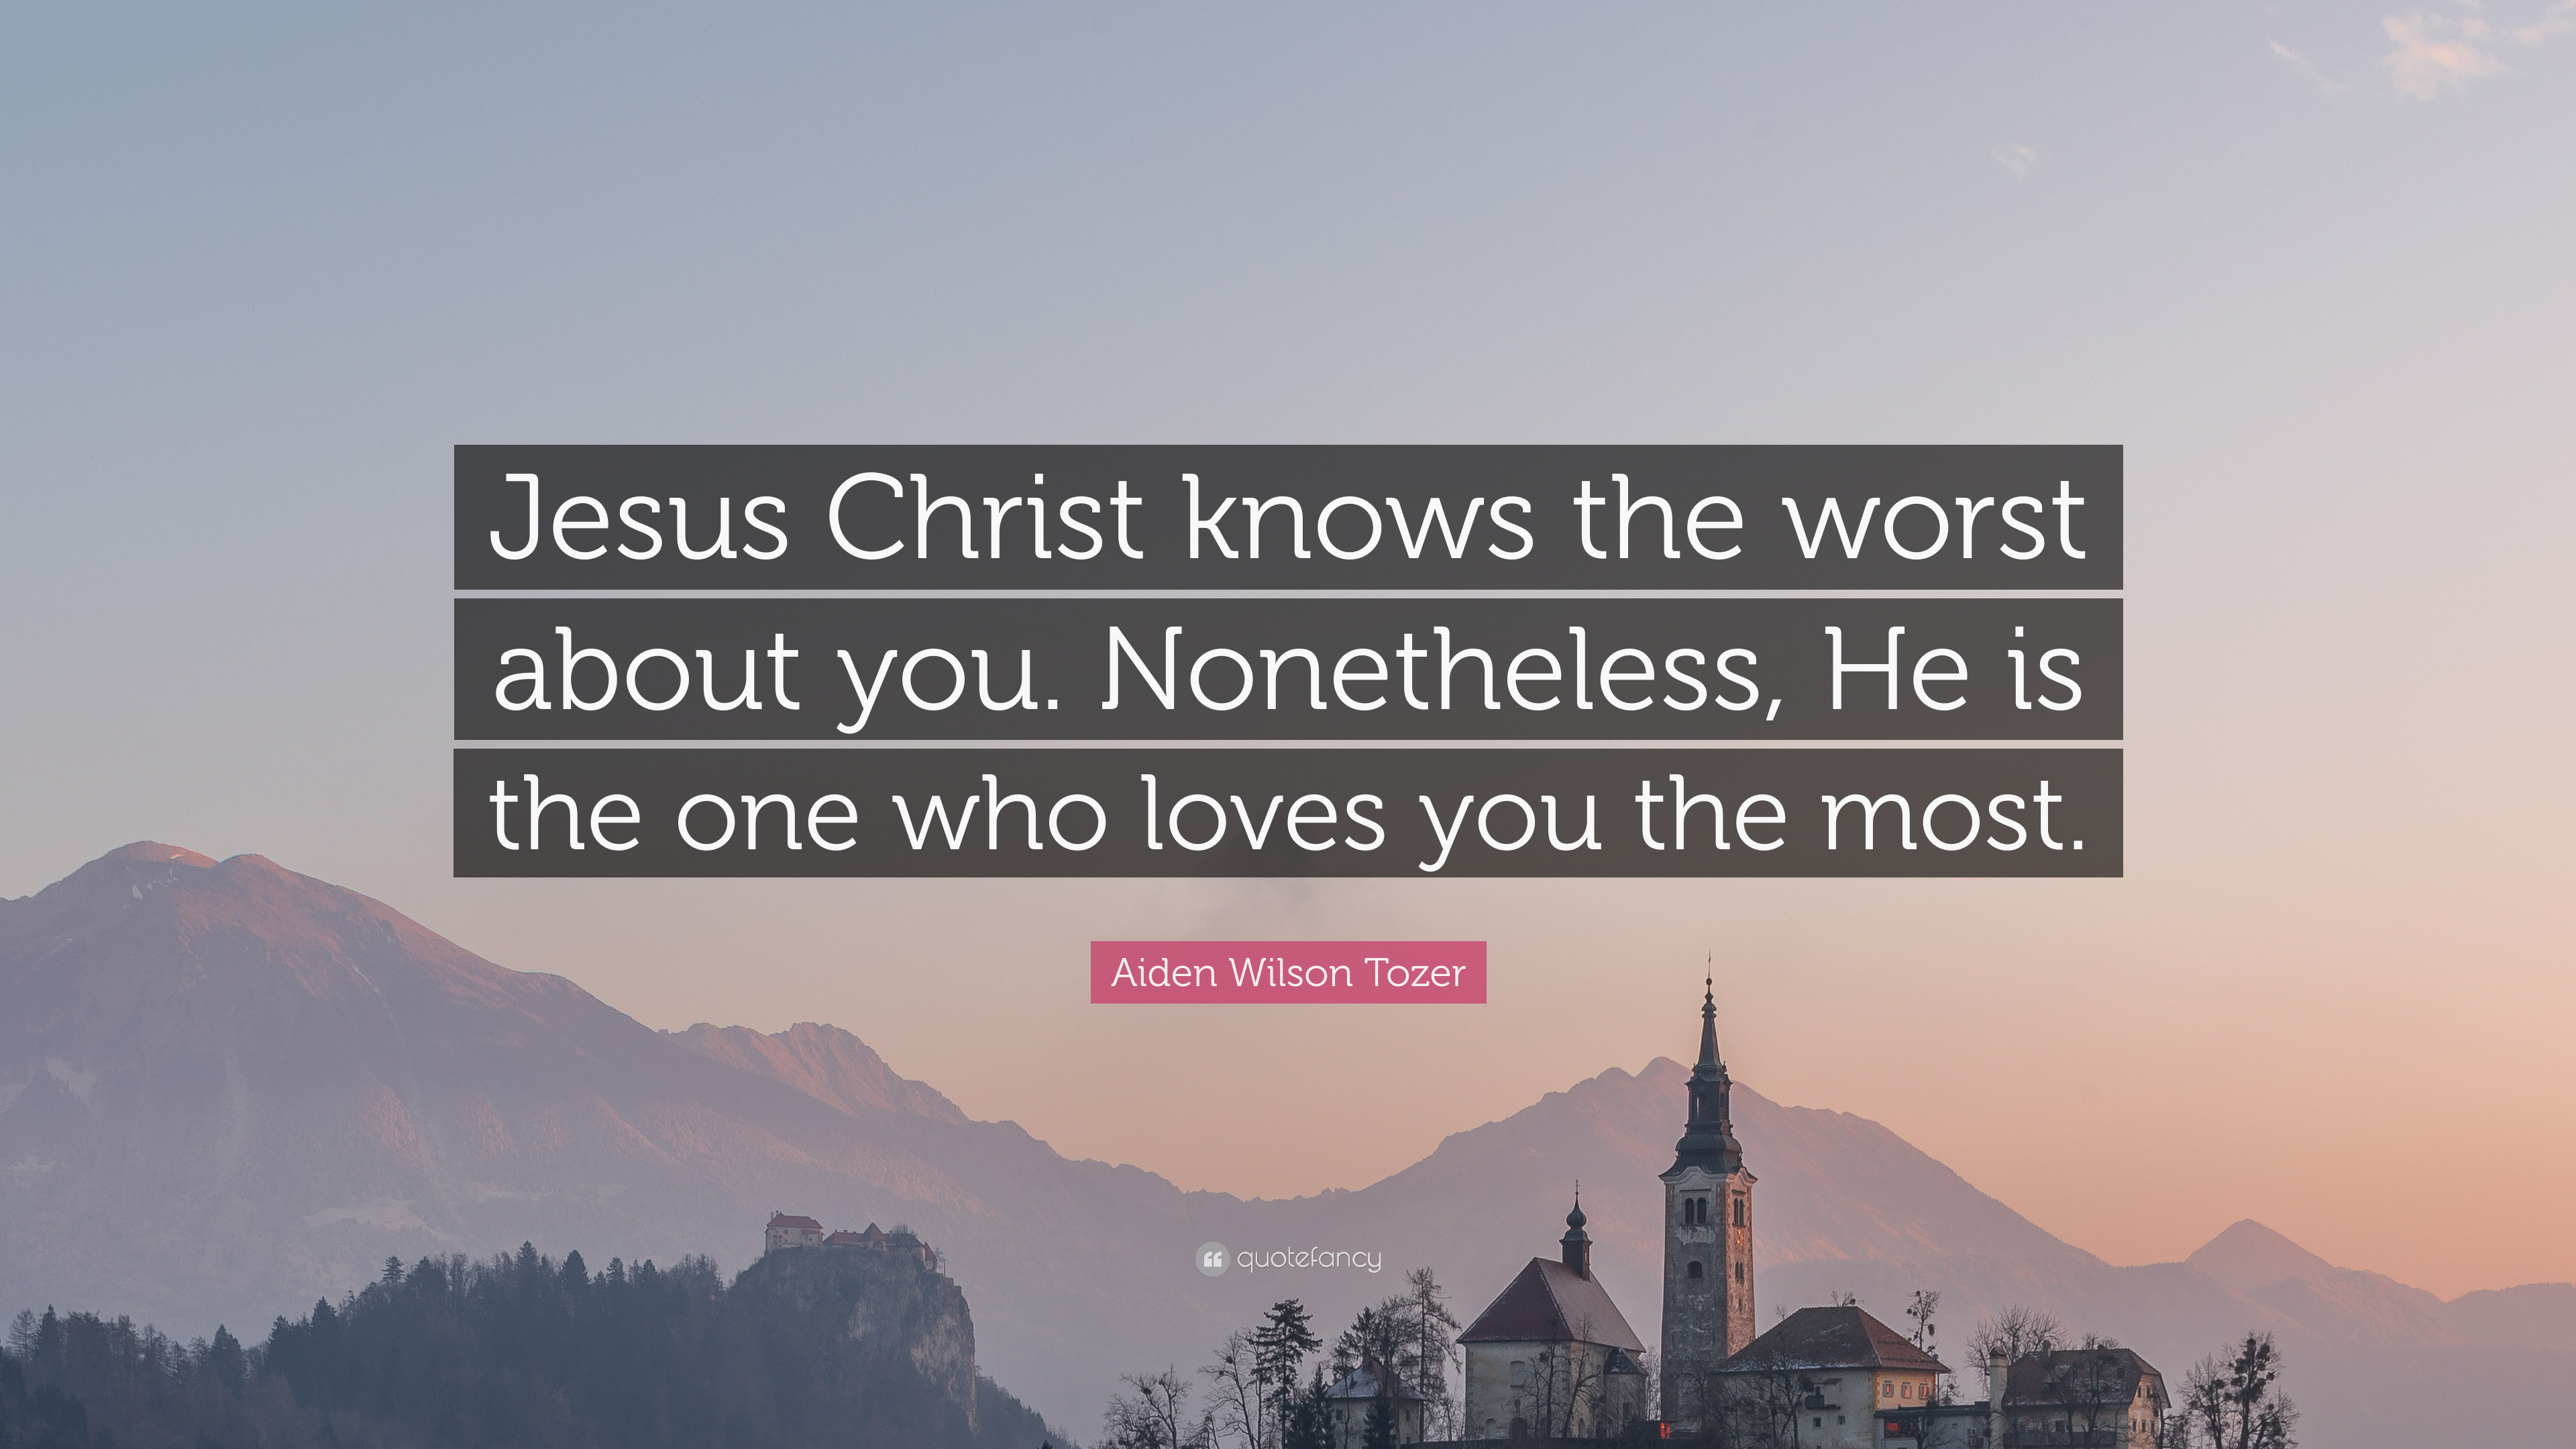 The one who loves you the most